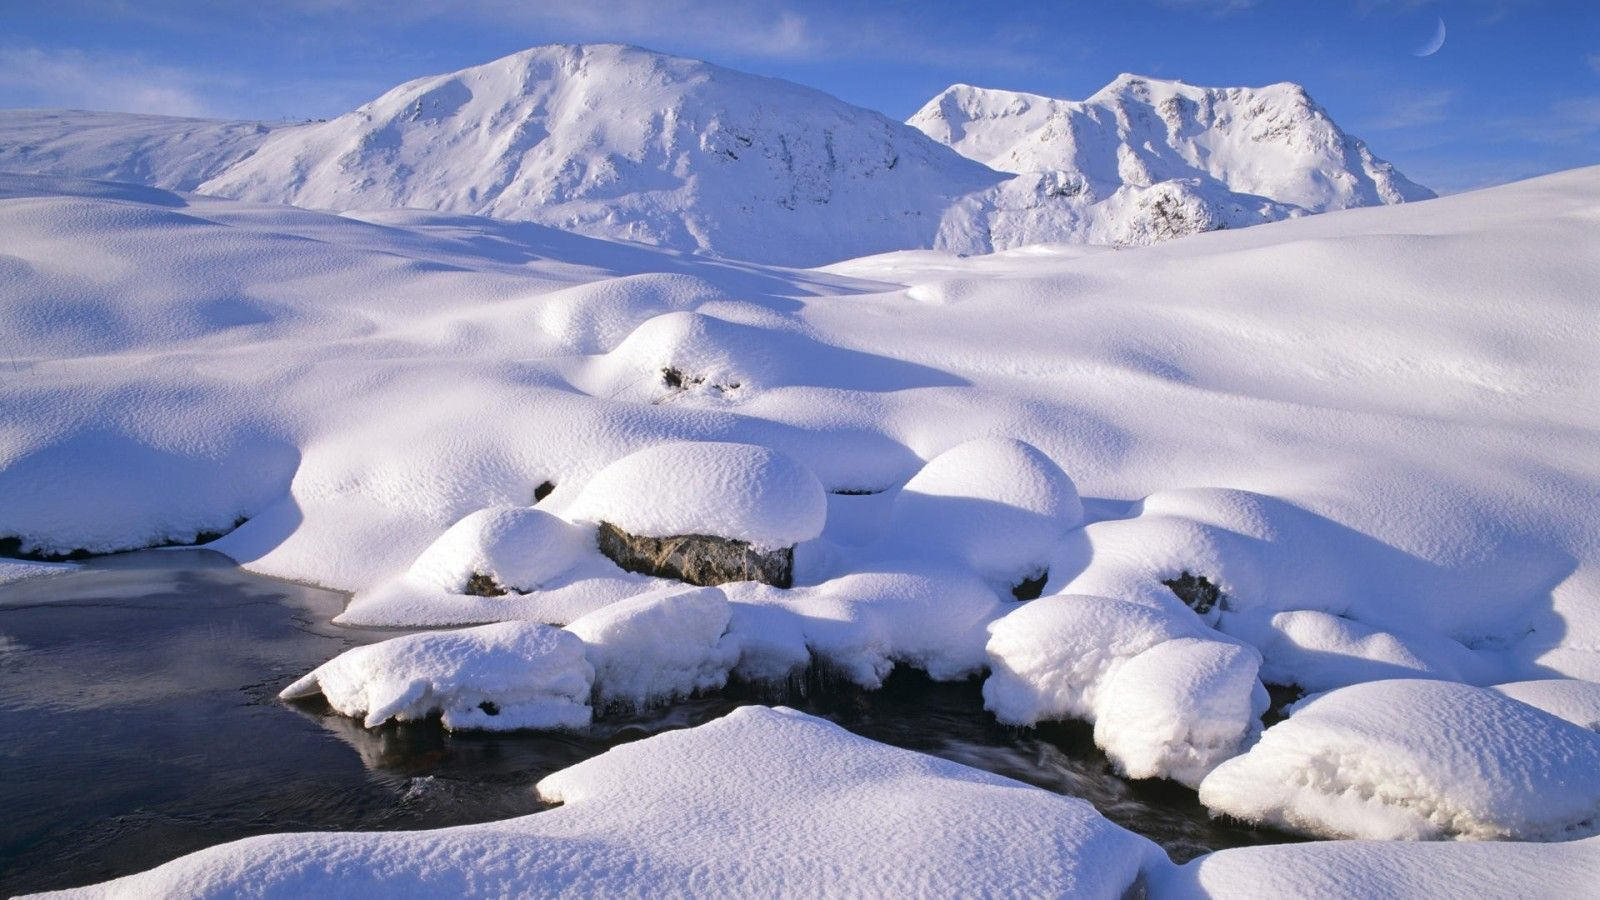 25 Snow Wallpapers Backgrounds Images Pictures 1600x900